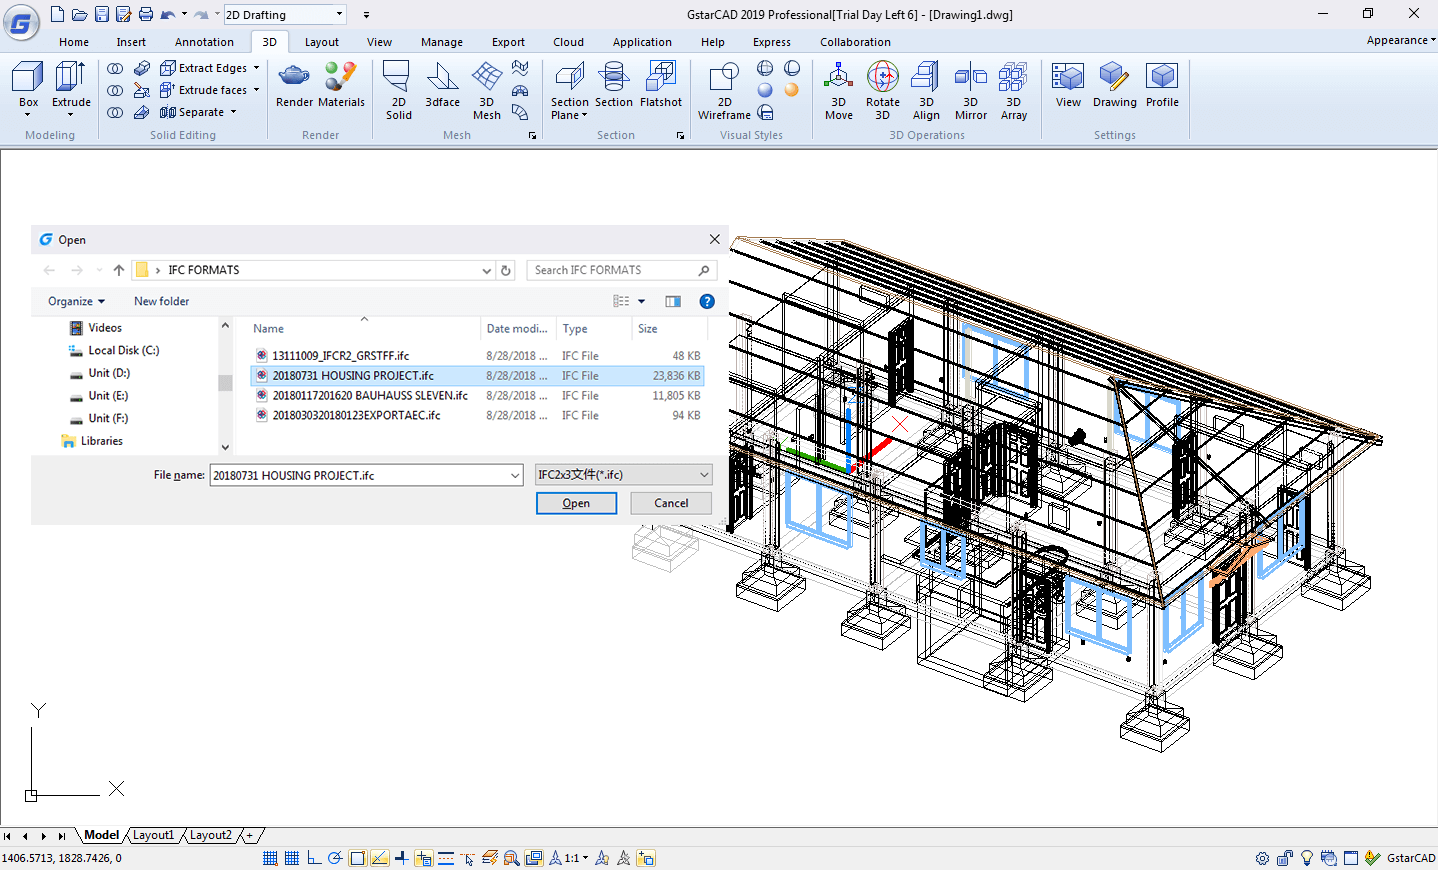 Gstar CAD software 2019 free full download